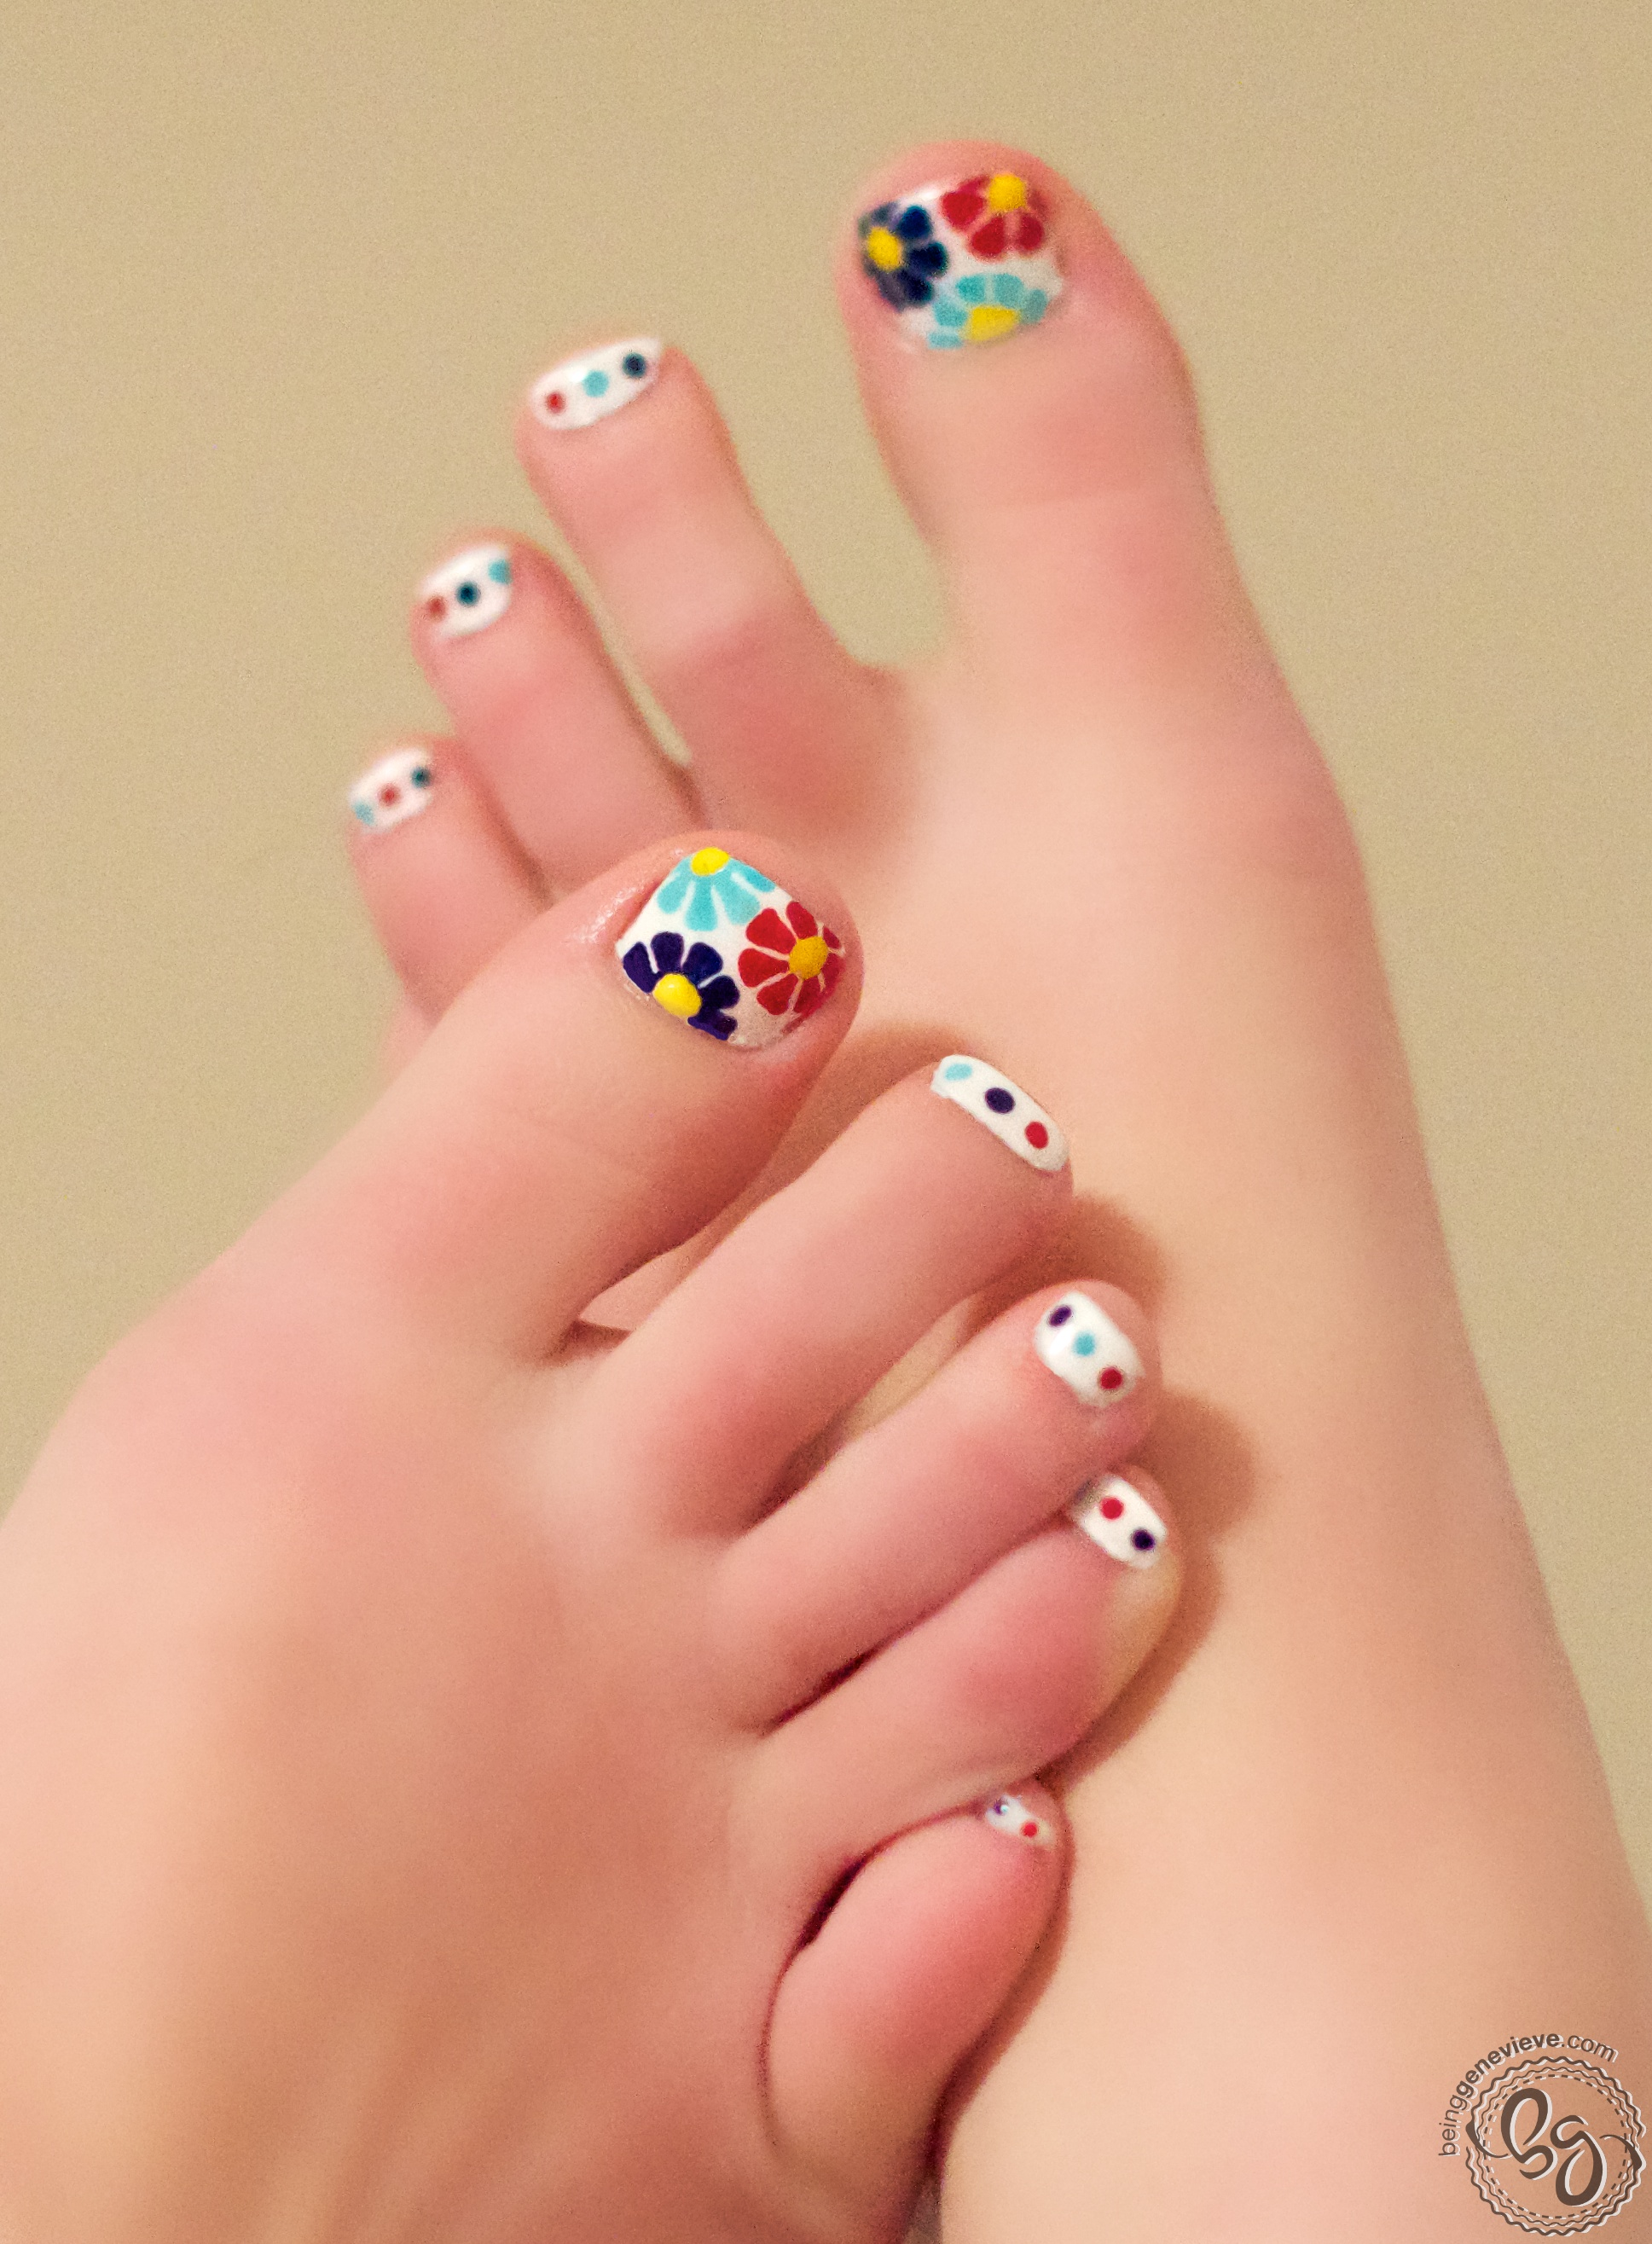 Painting the Perfect Pedicure | Being Genevieve